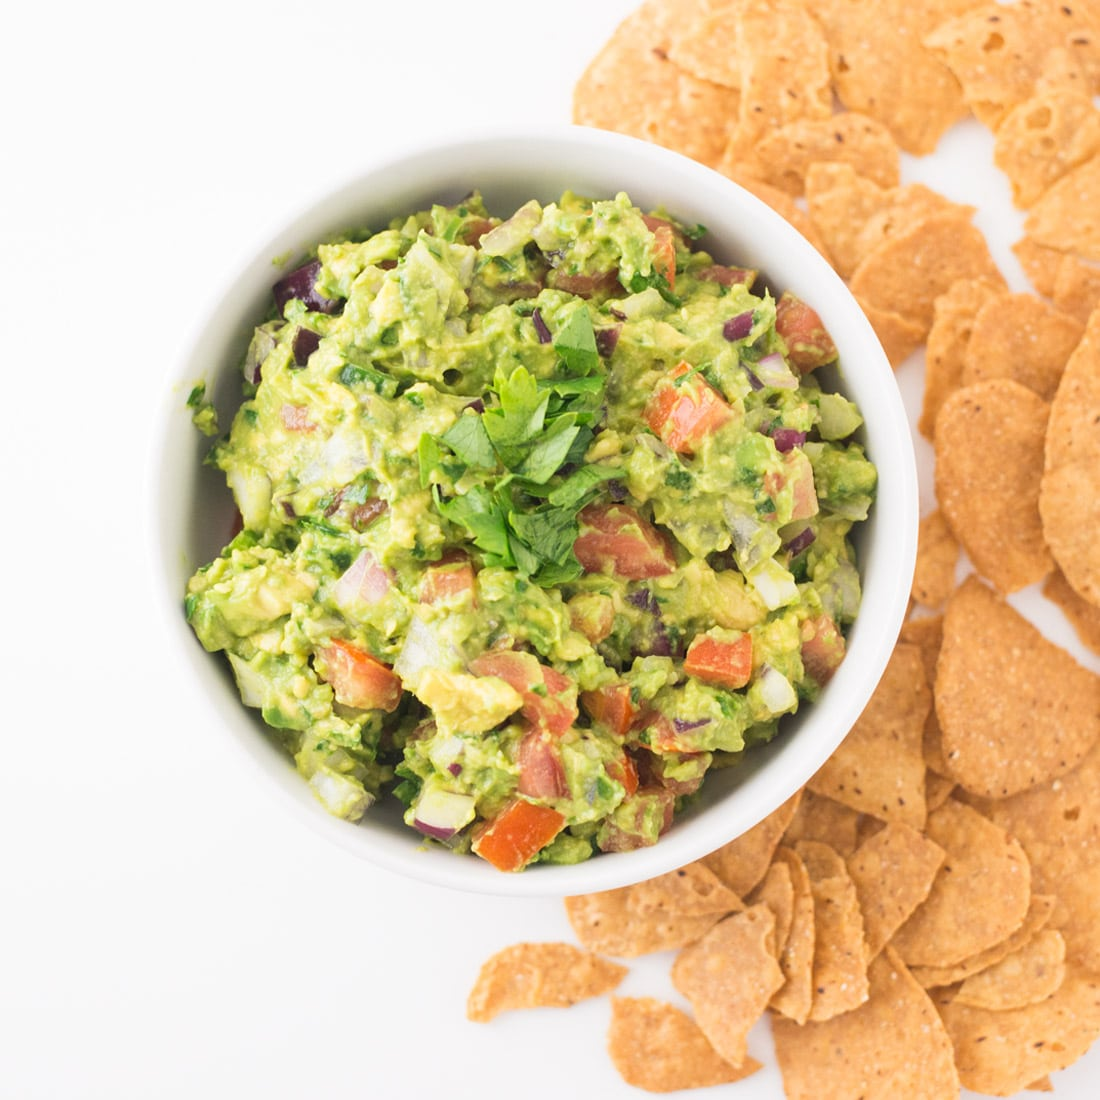 How To Make Easy Homemade Guacamole • Plant-Based Food